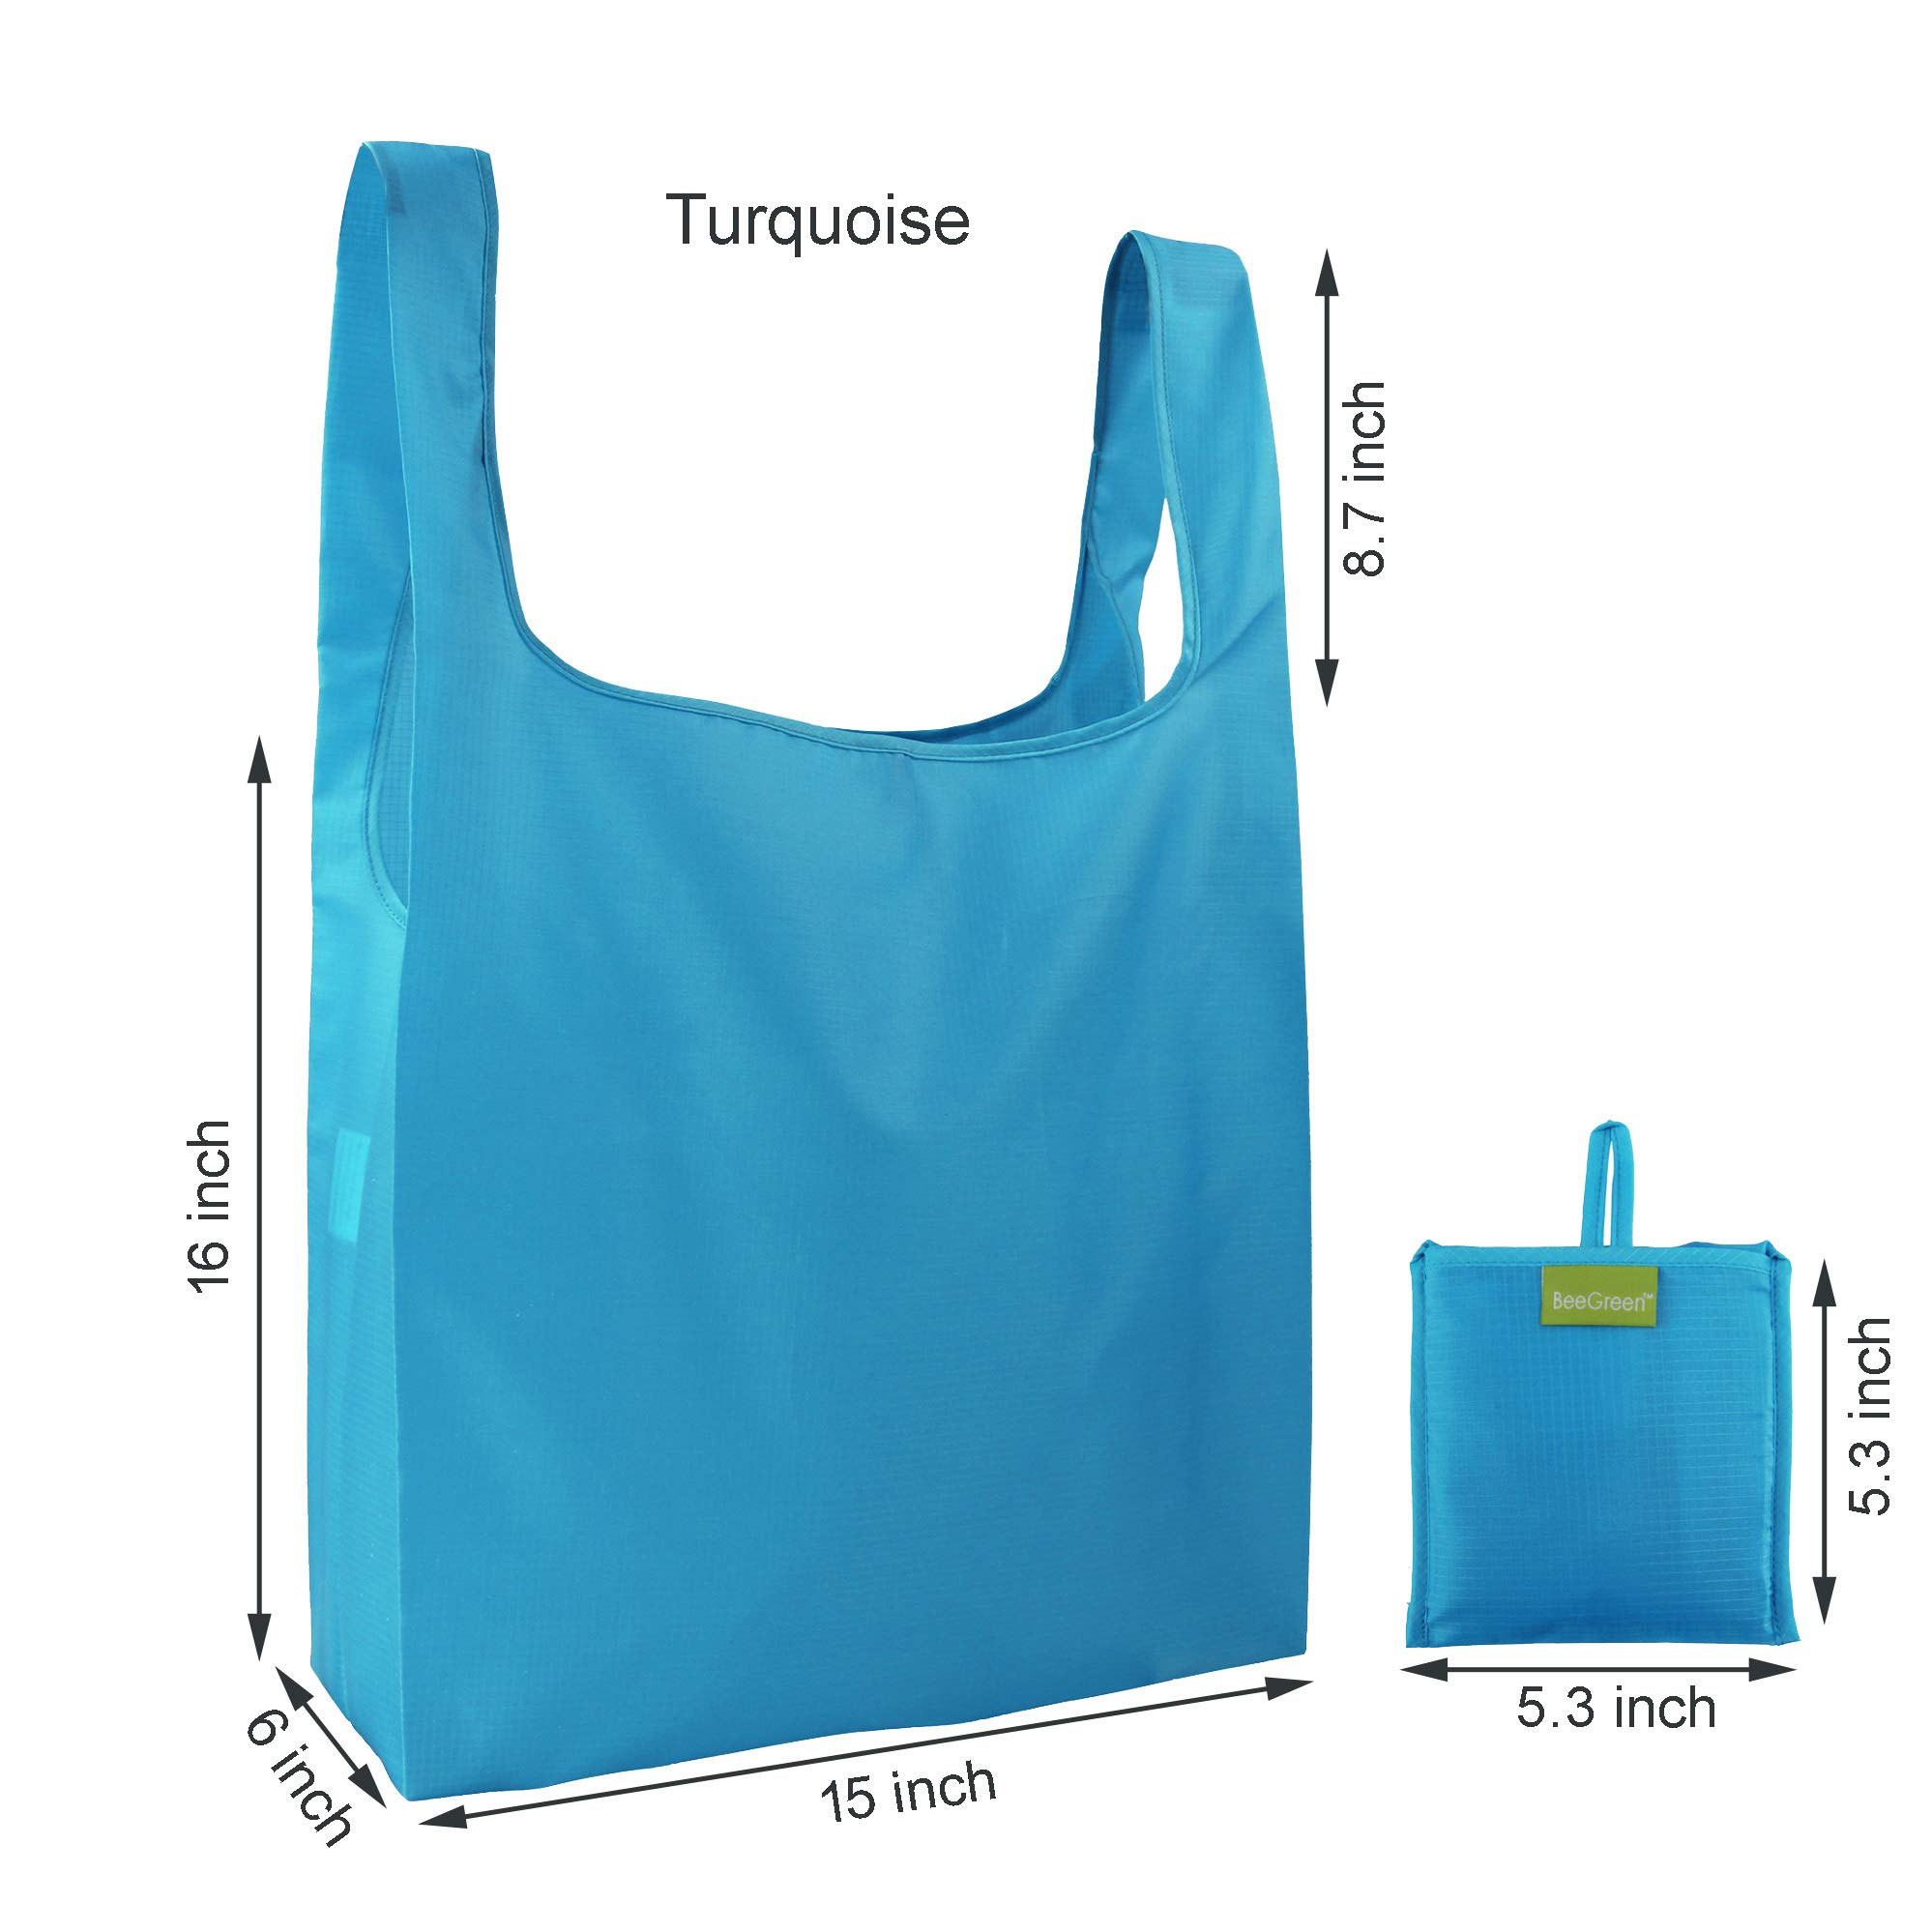 Reusable Grocery Bags Set of 5, Grocery Tote Foldable into Attached Pouch, Ripstop Polyester Reusable Shopping Bags, Washable, Durable and Lightweight (Royal,Purple,Pink,Orange,Teal) by BeeGreen (Image #2)